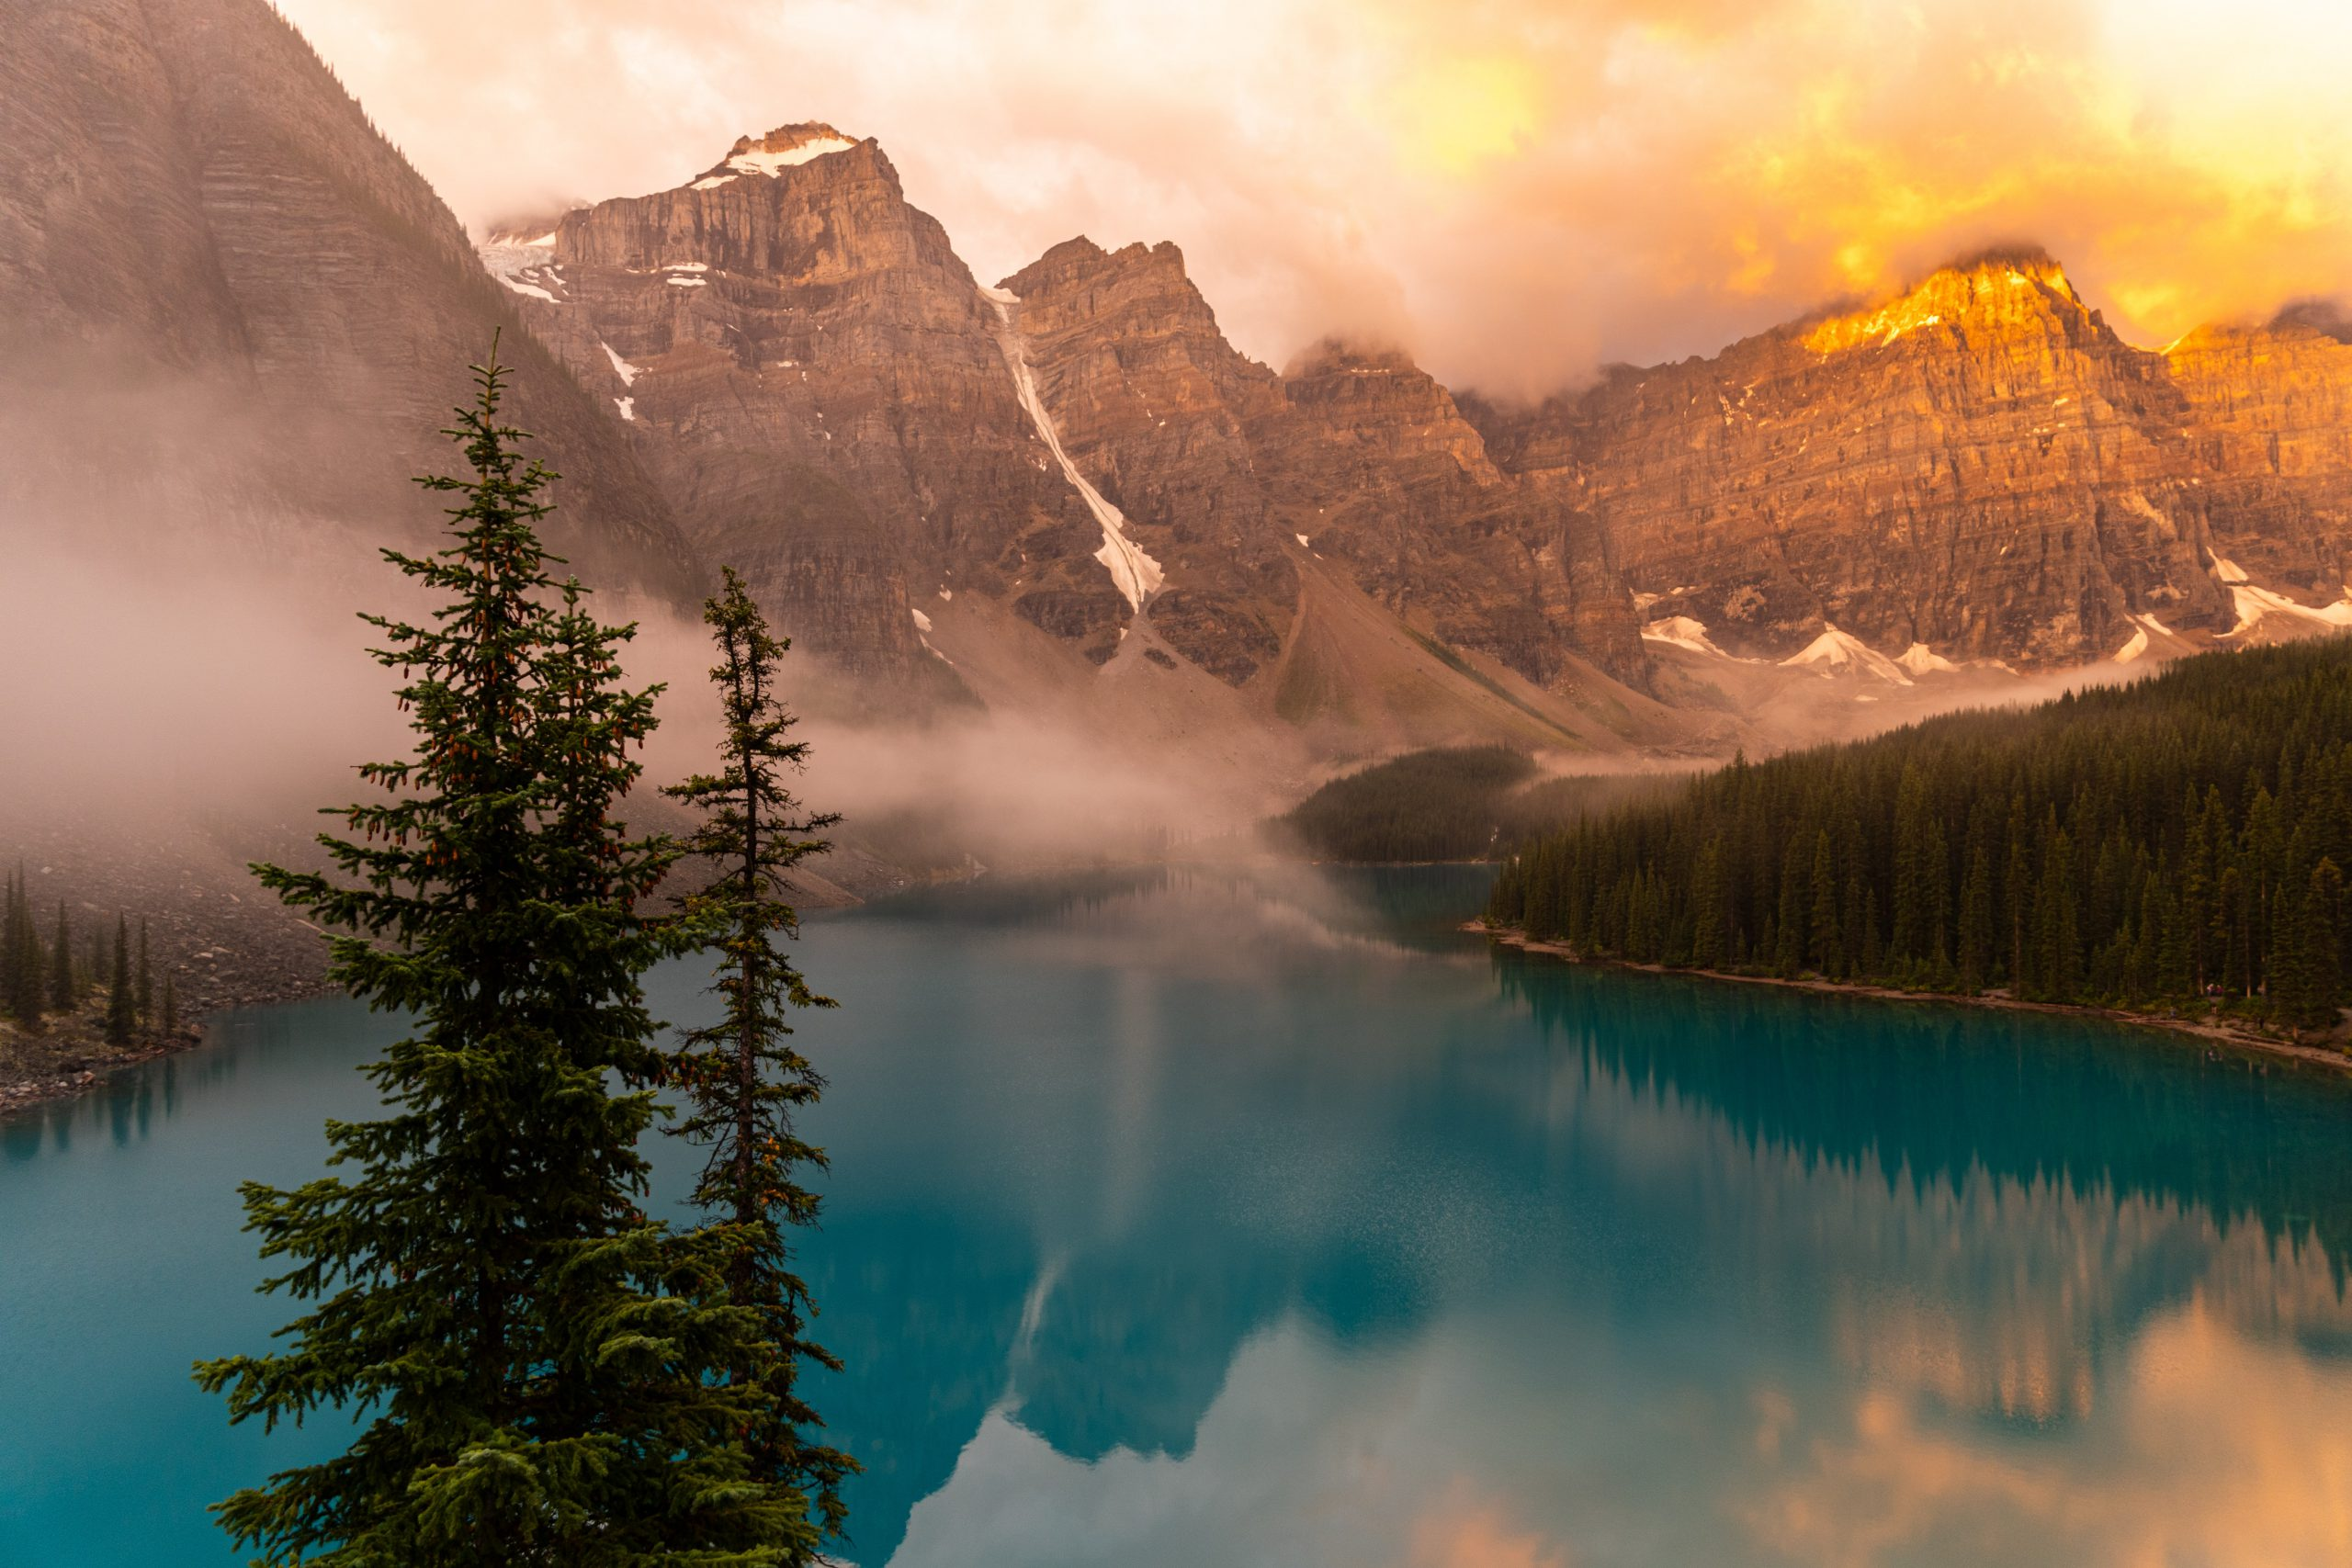 Alberta Canada, lake, mountains and forest